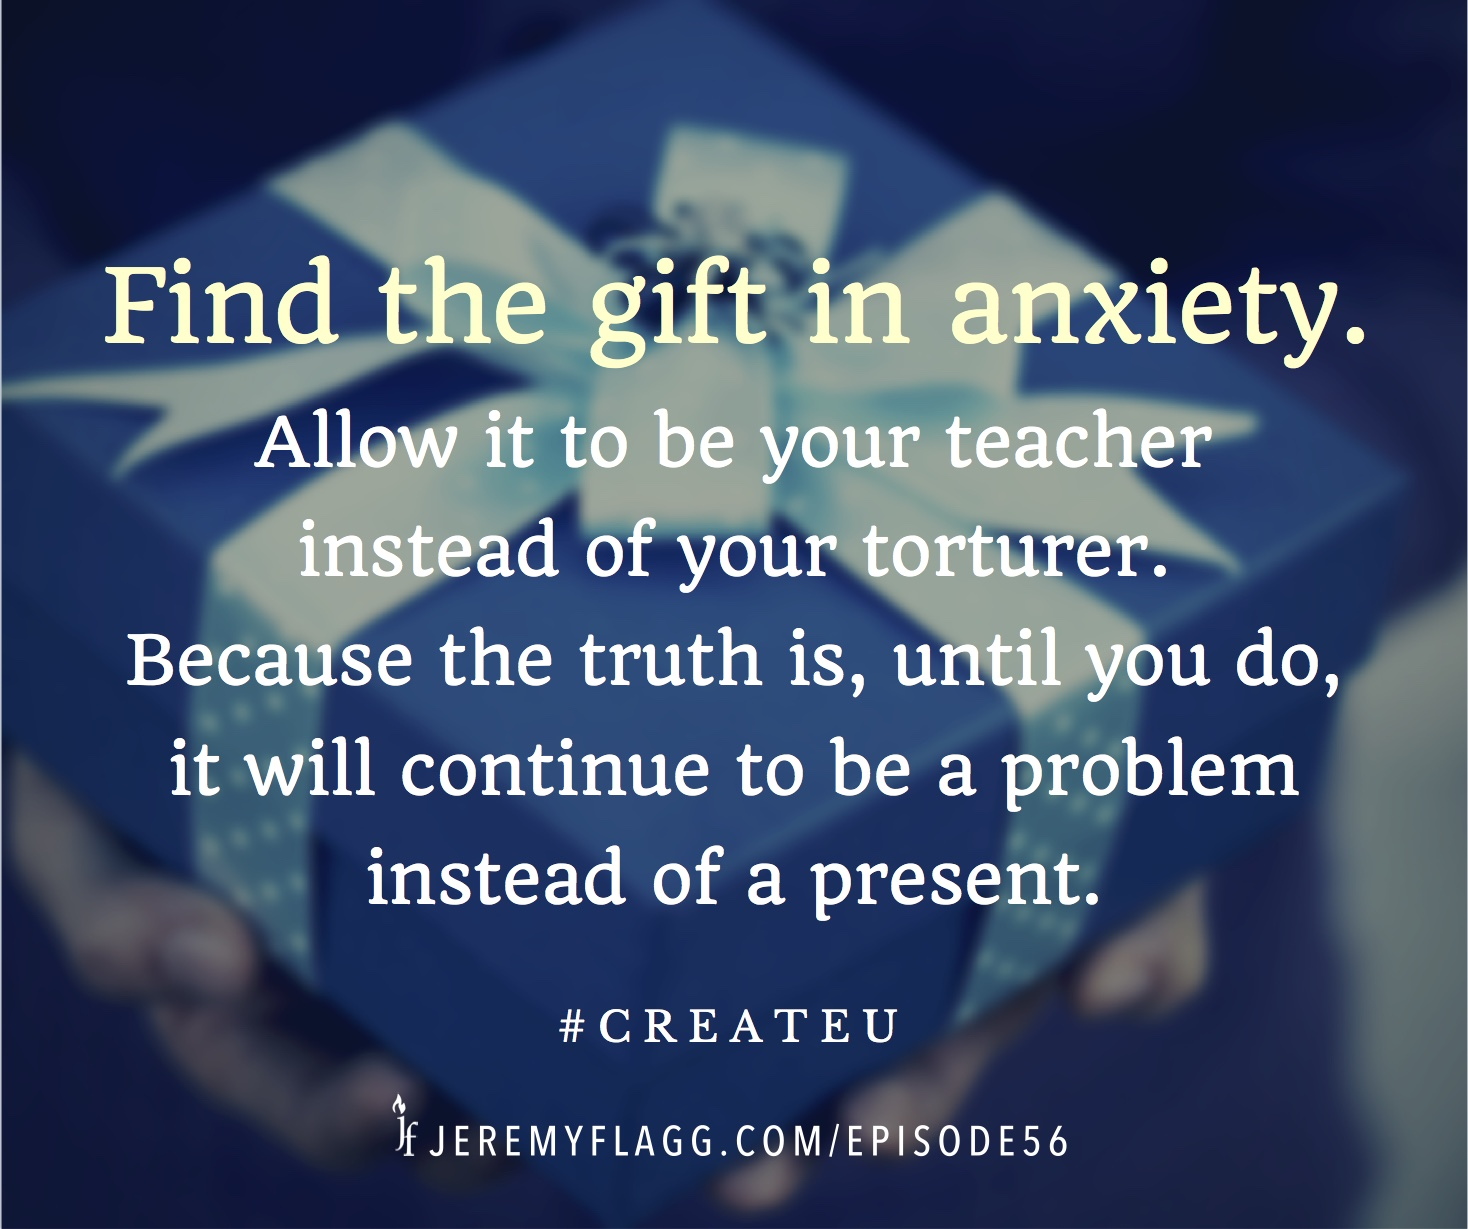 Find-the-gift-in-anxiety-quote-Jeremy-Flagg-FB